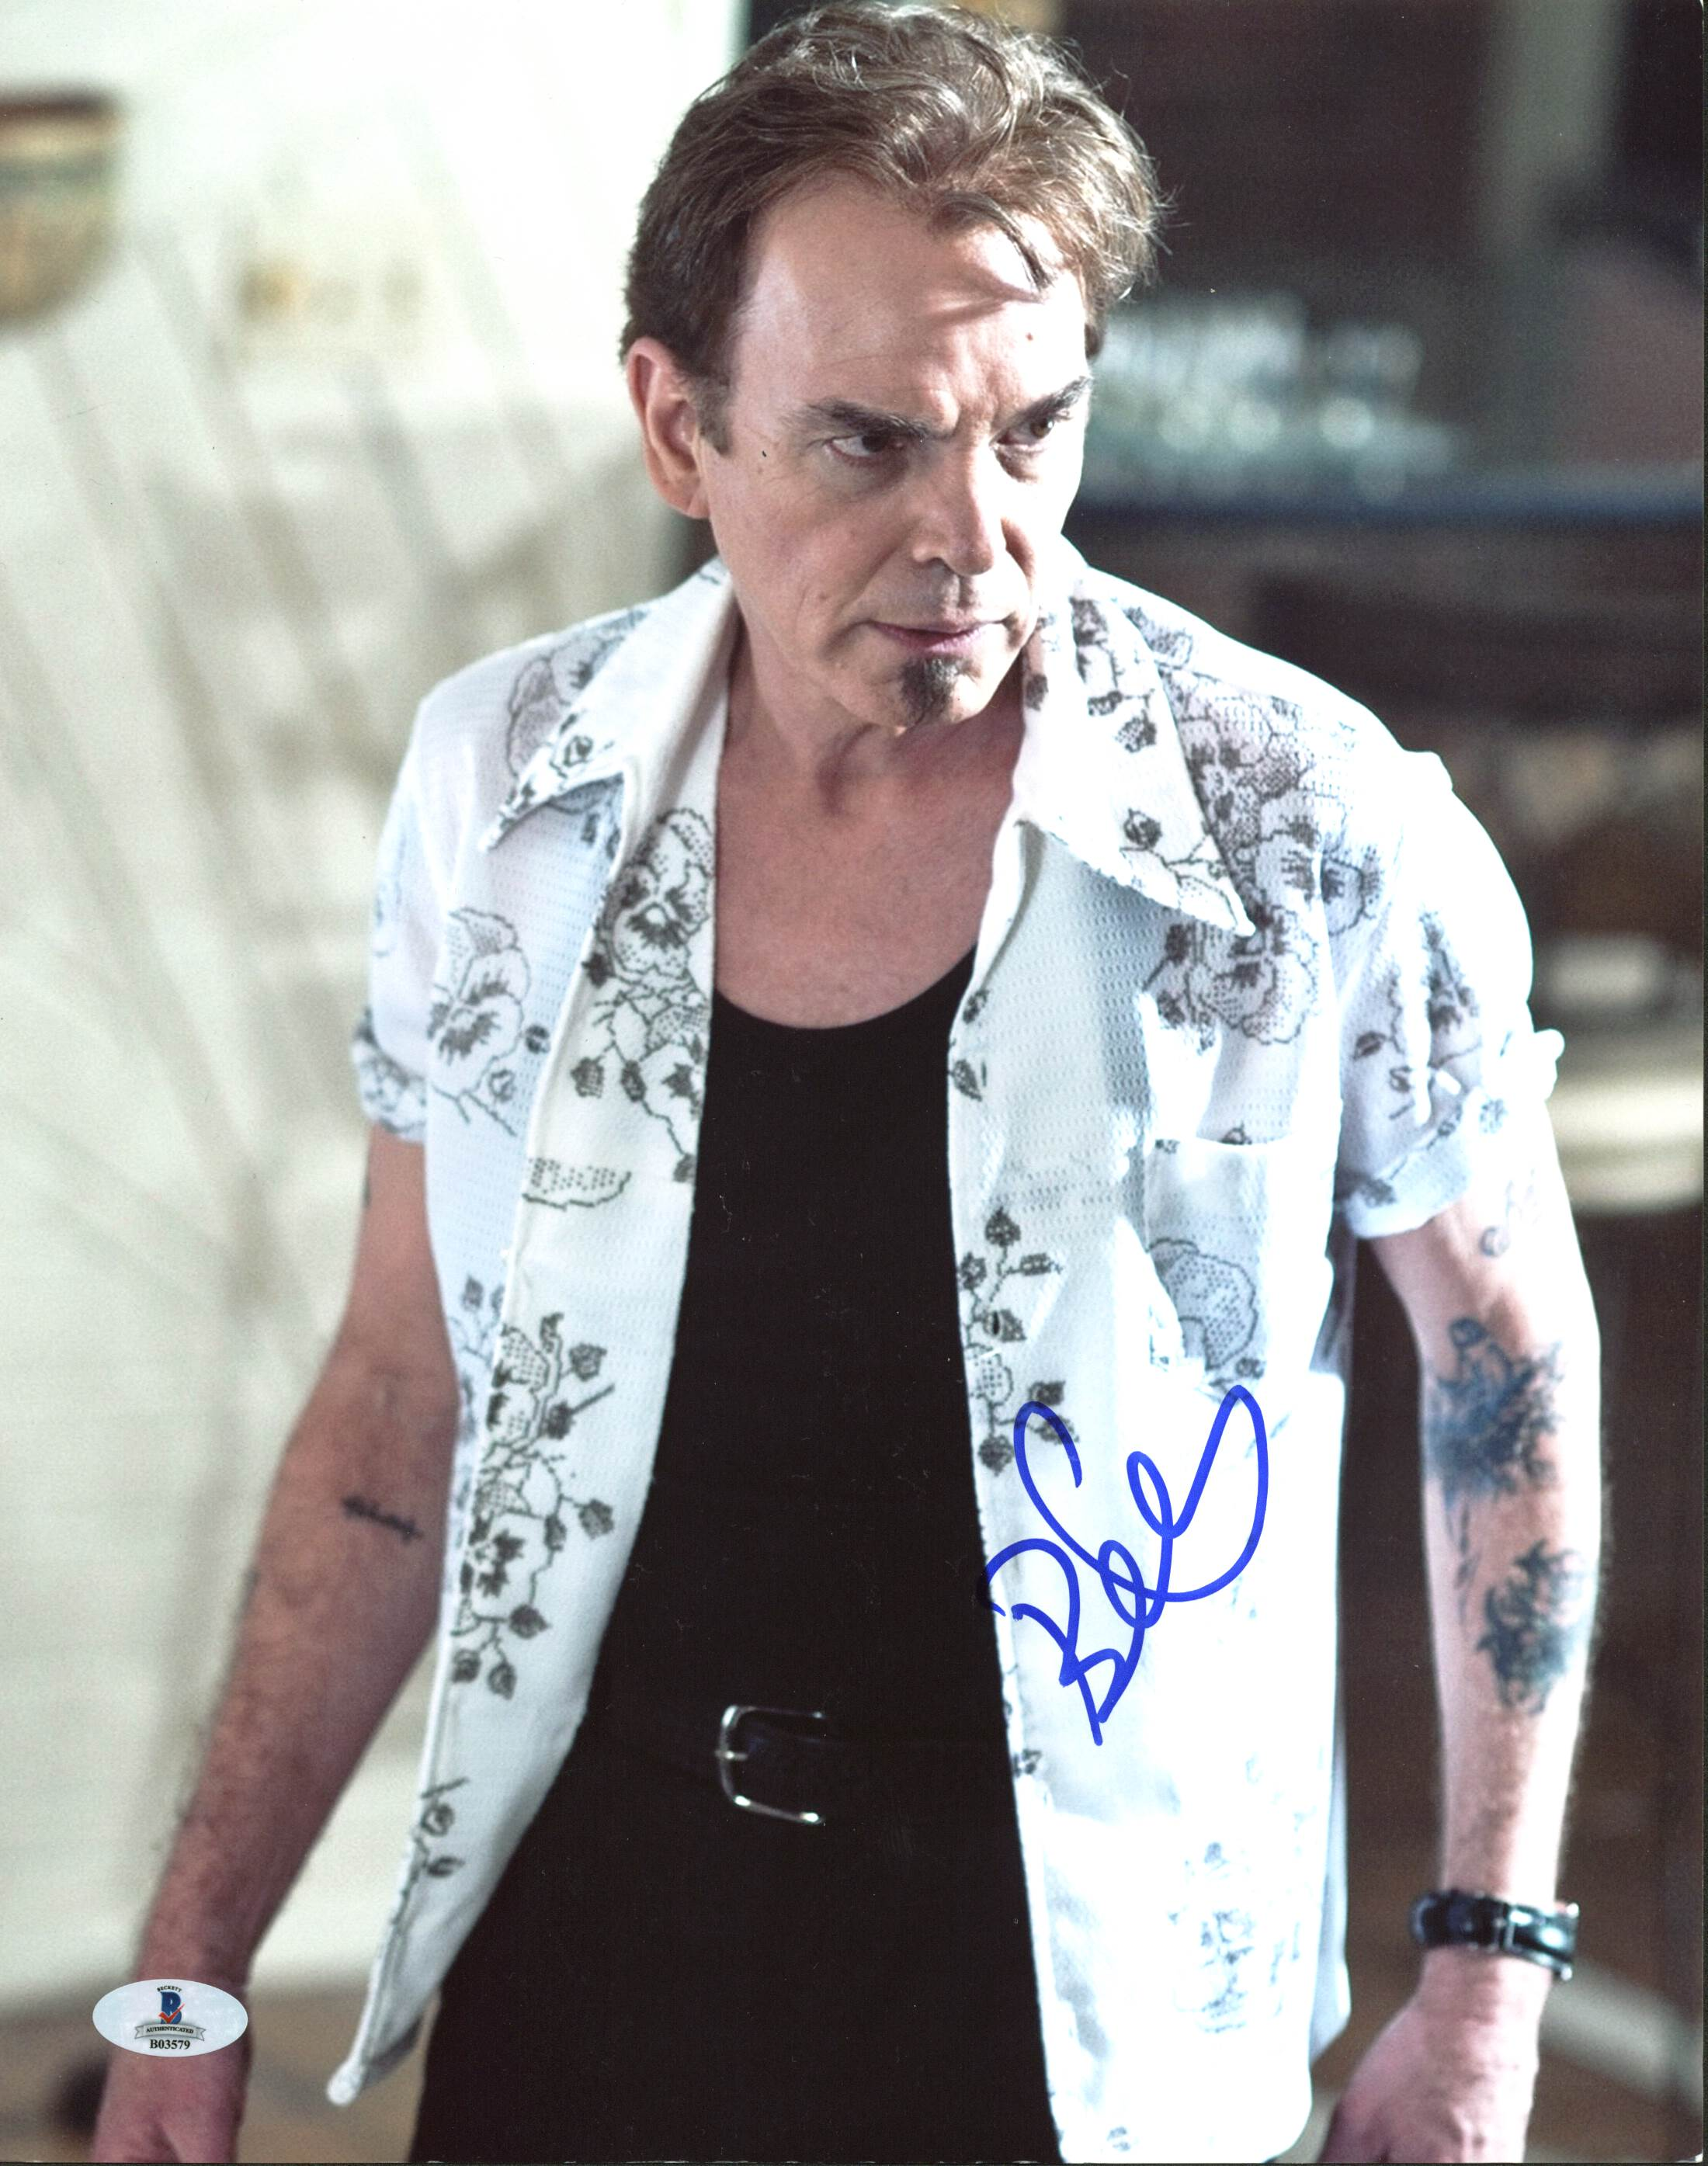 Billy Bob Thornton The Baytown Outlaws Authentic Signed 11X14 Photo BAS #B03579